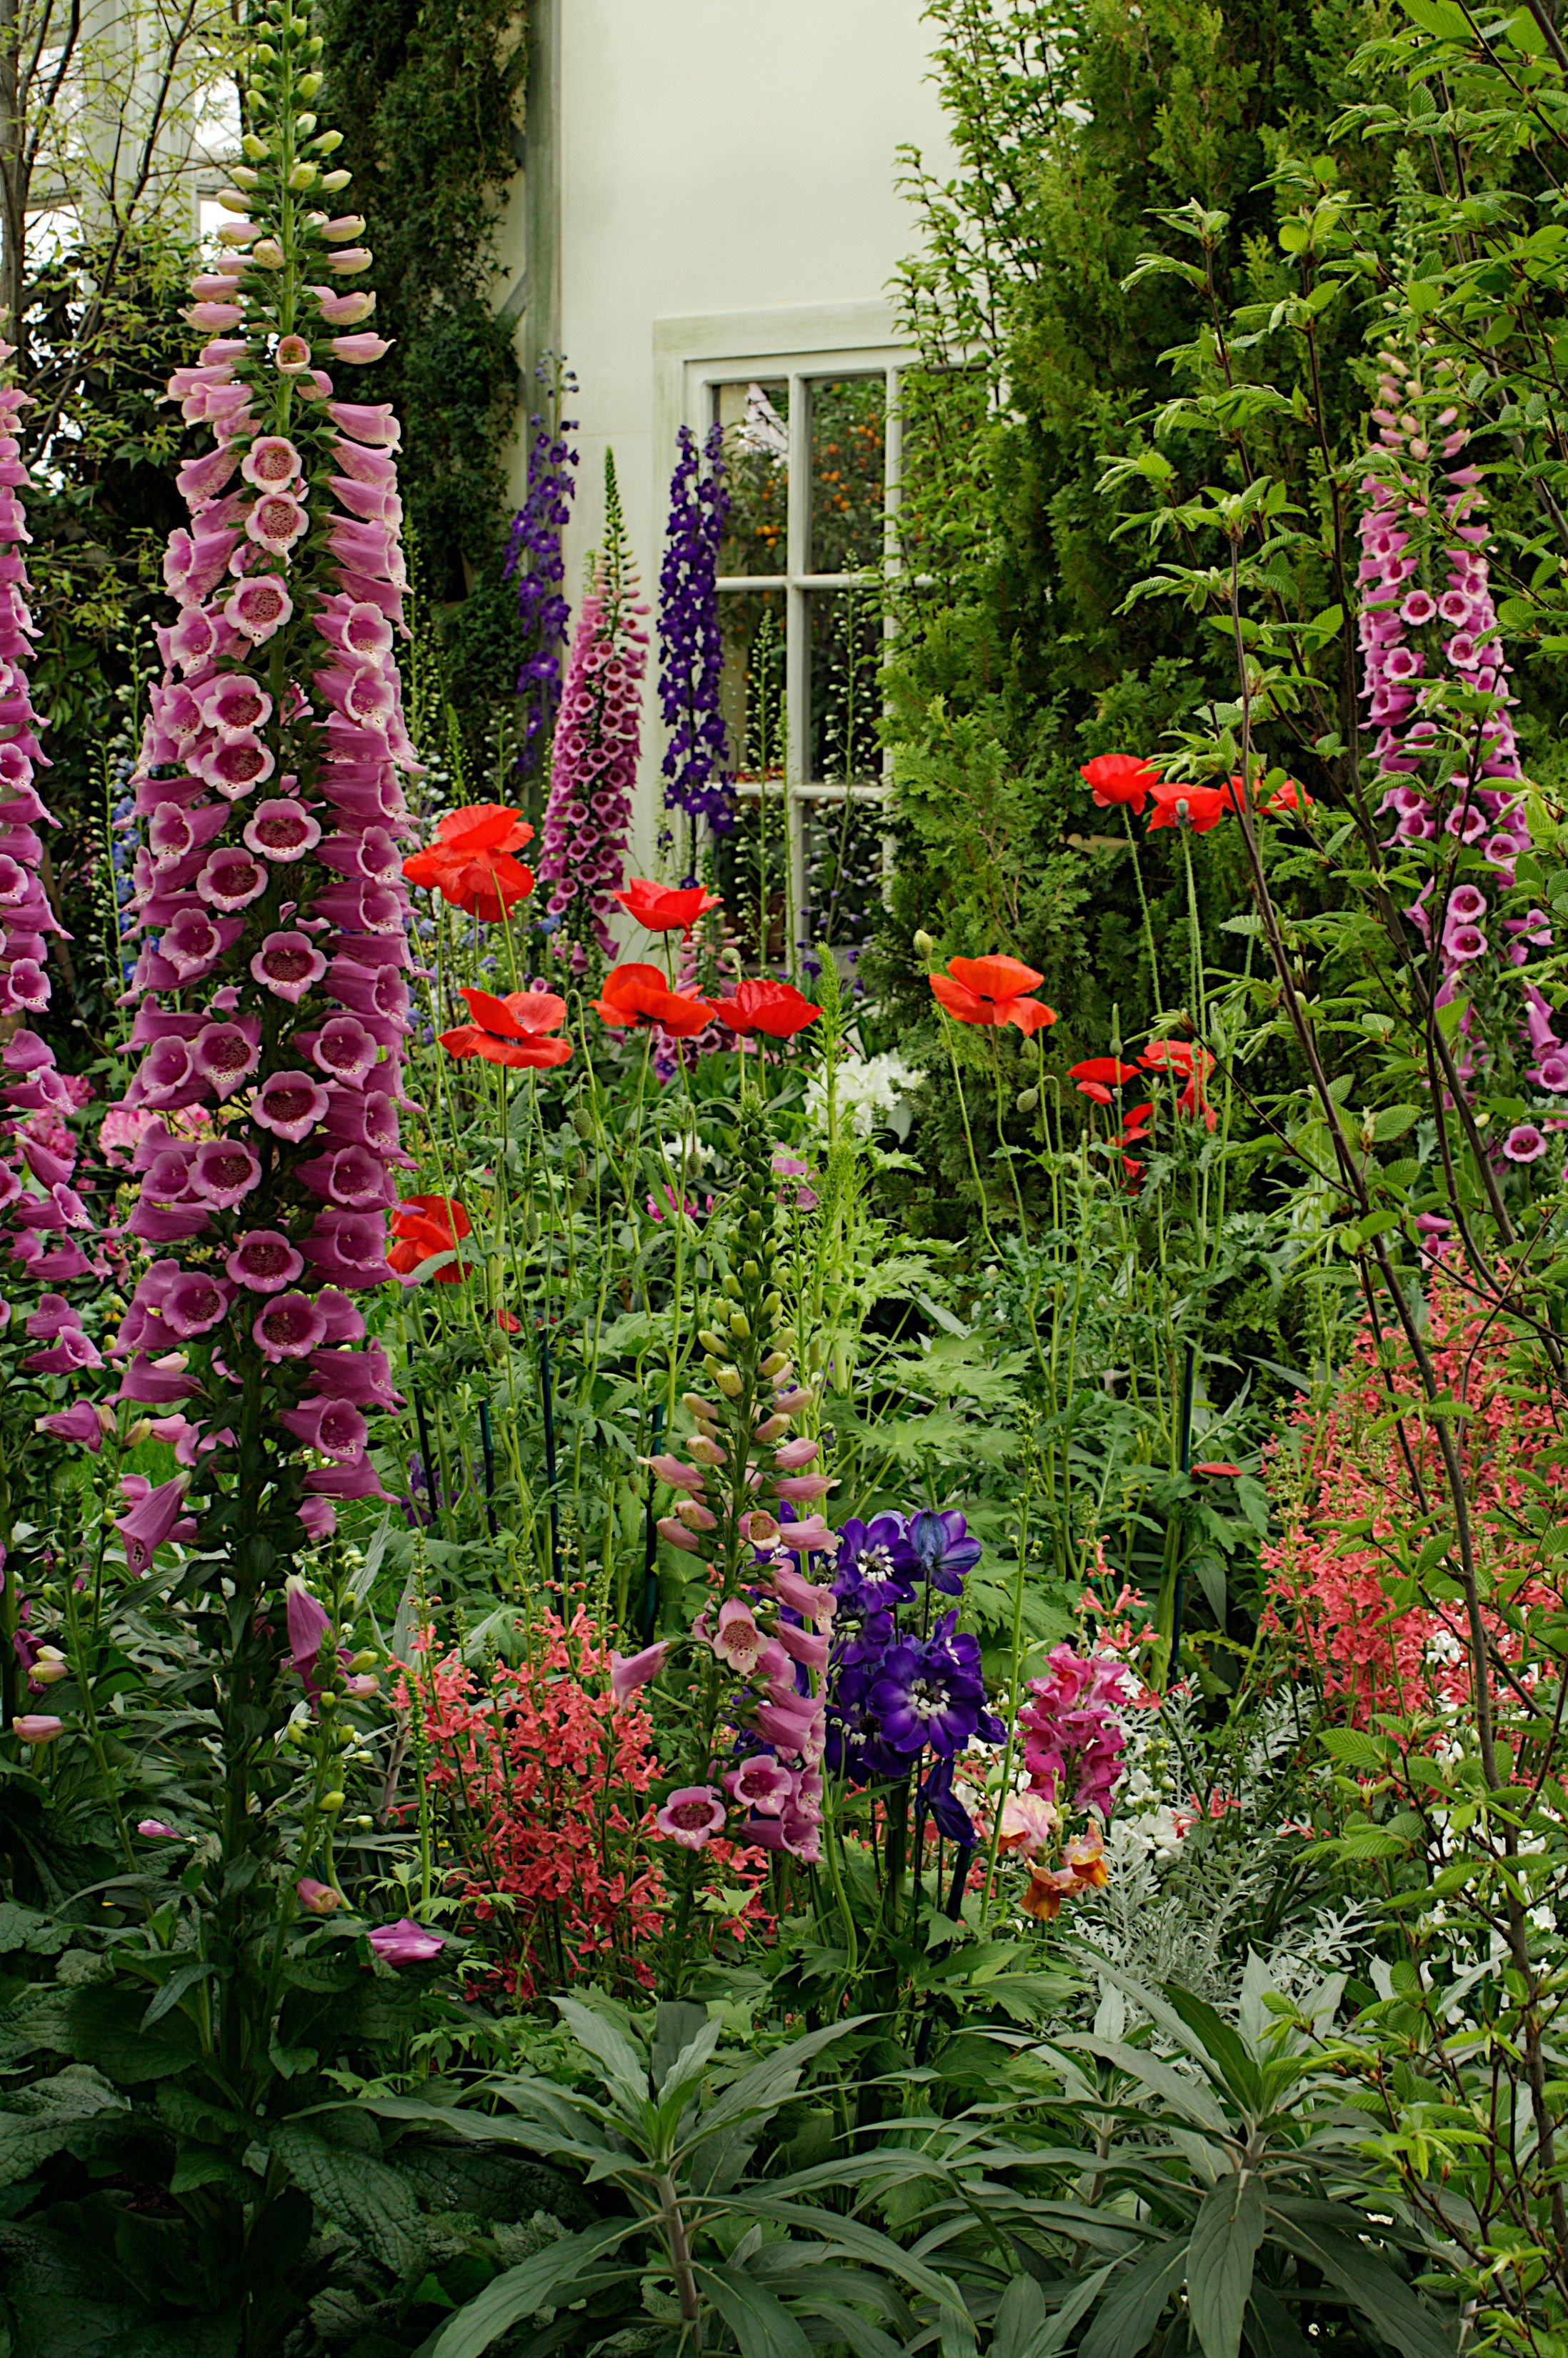 How Does Your Garden Grow Gardens Beautiful and Delphiniums